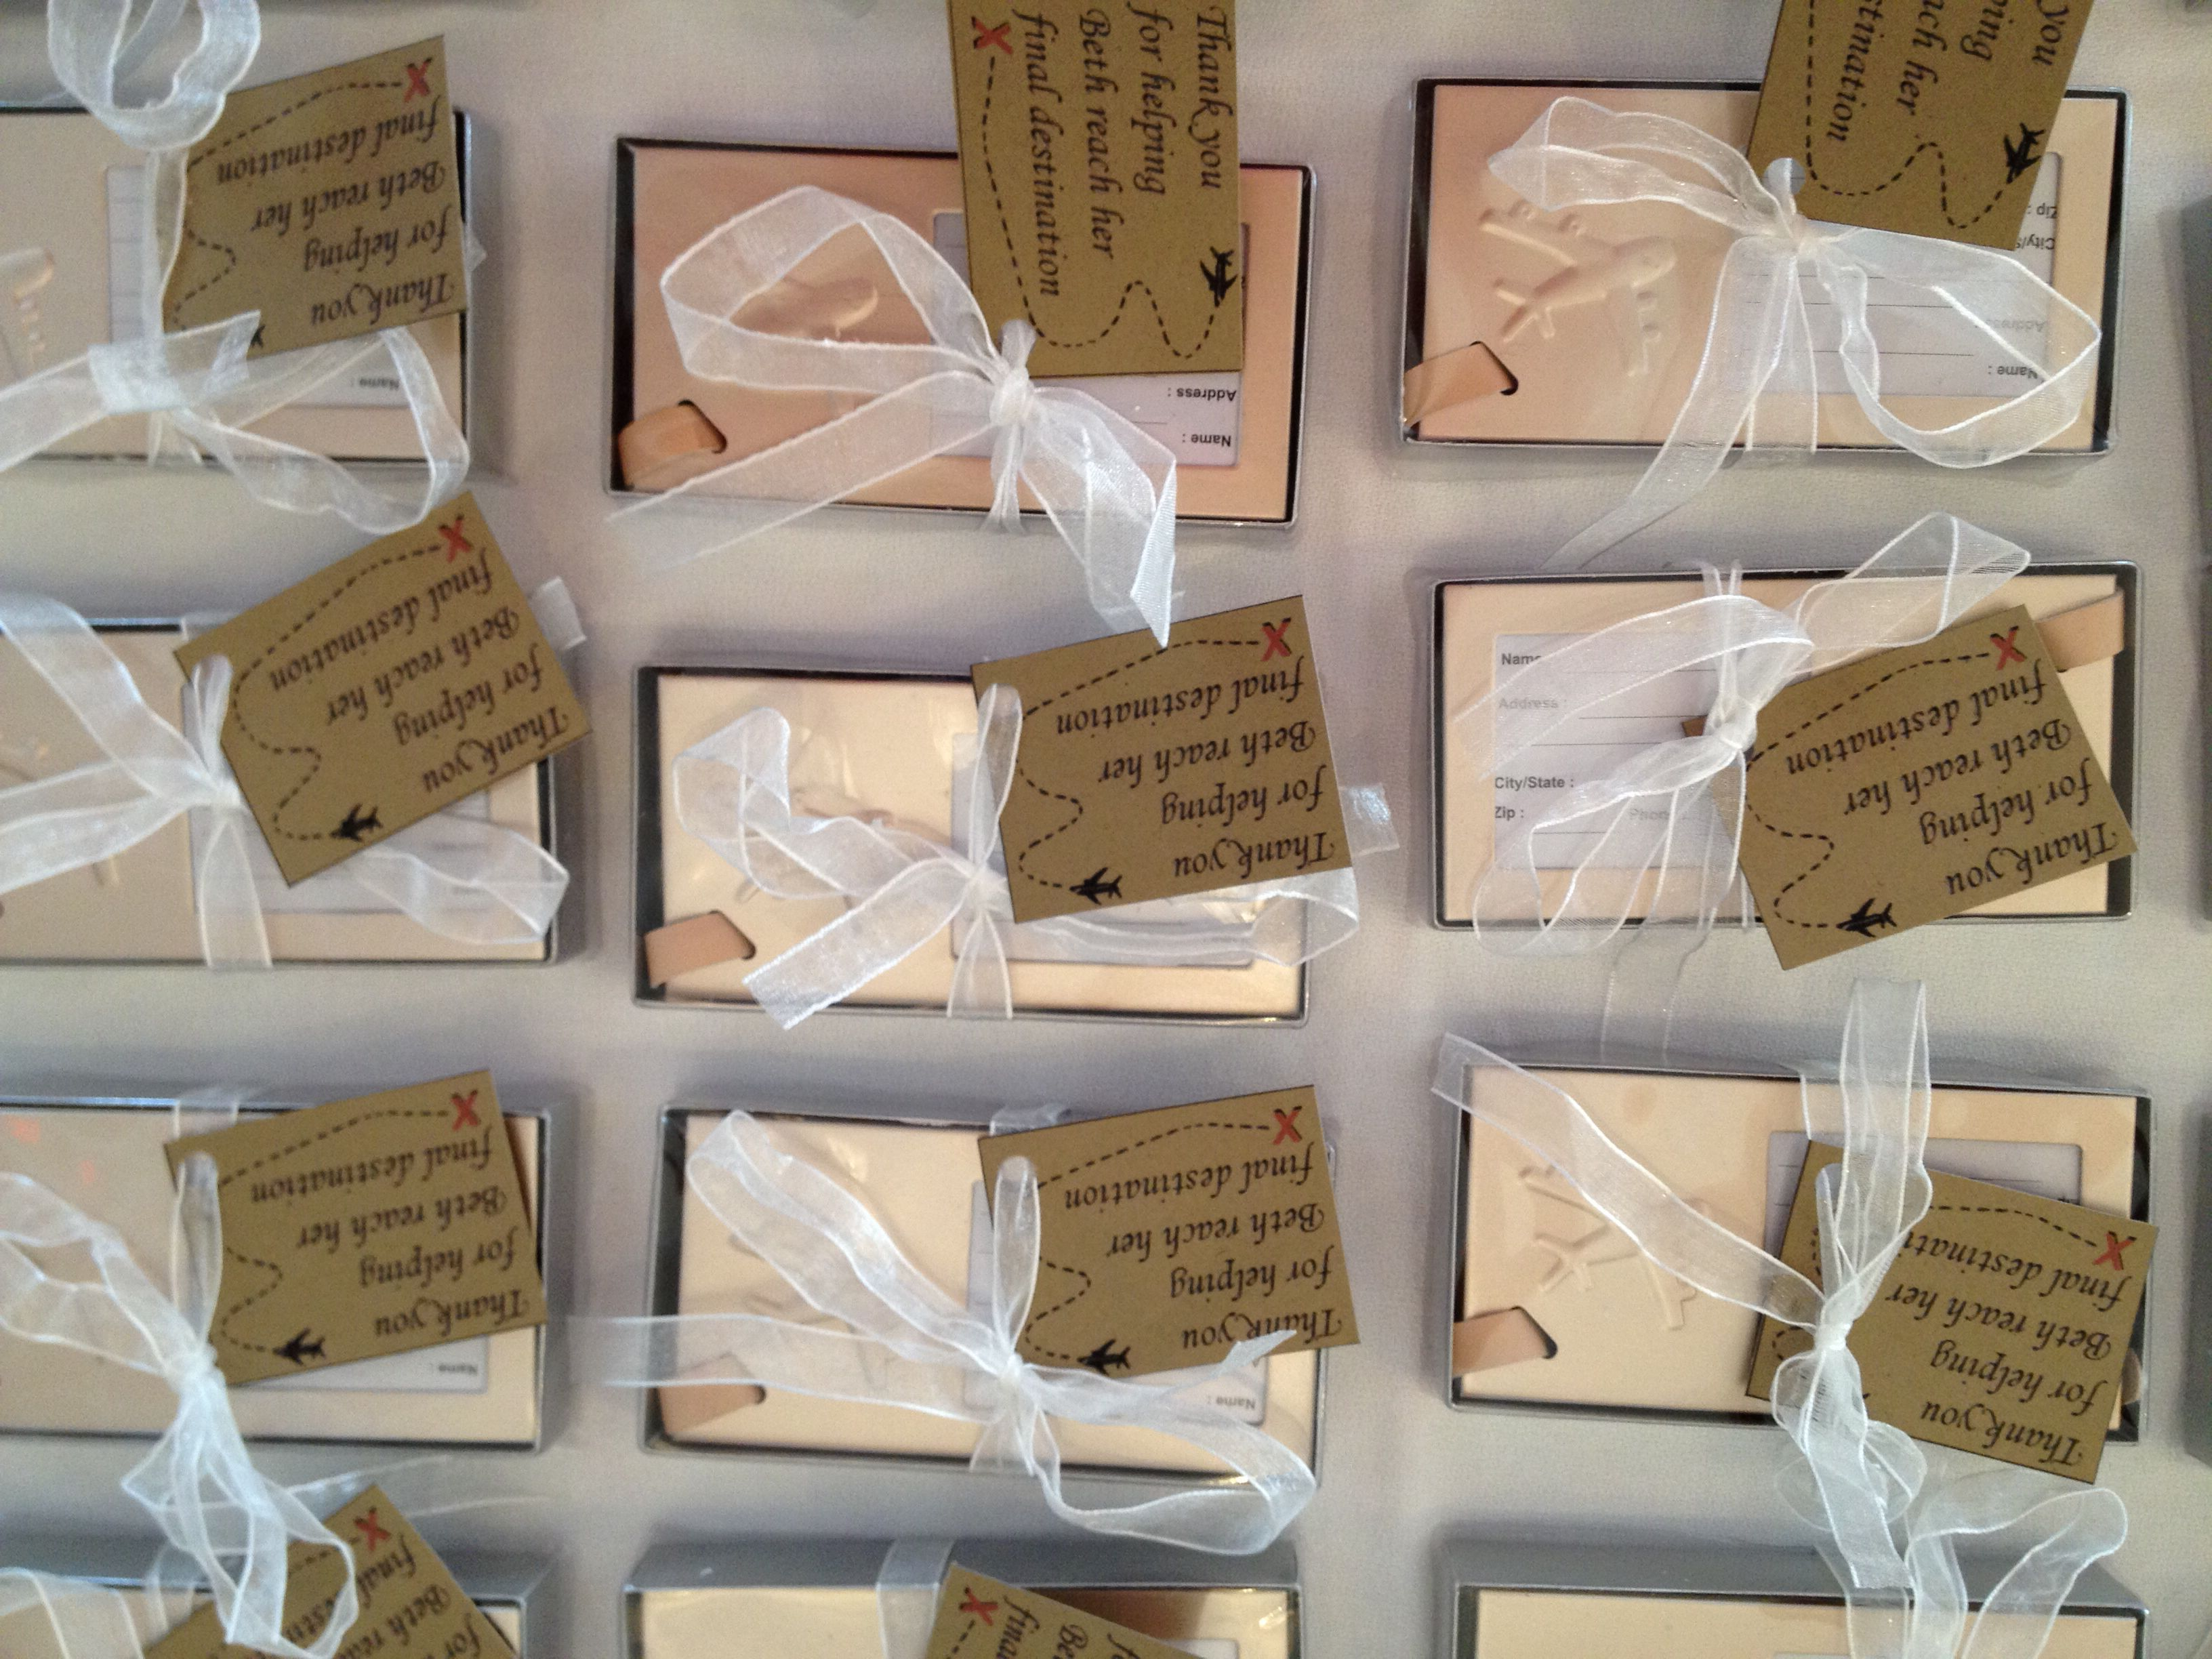 Travel suitcase tags for the favors for the brides shower! The guests loved them.